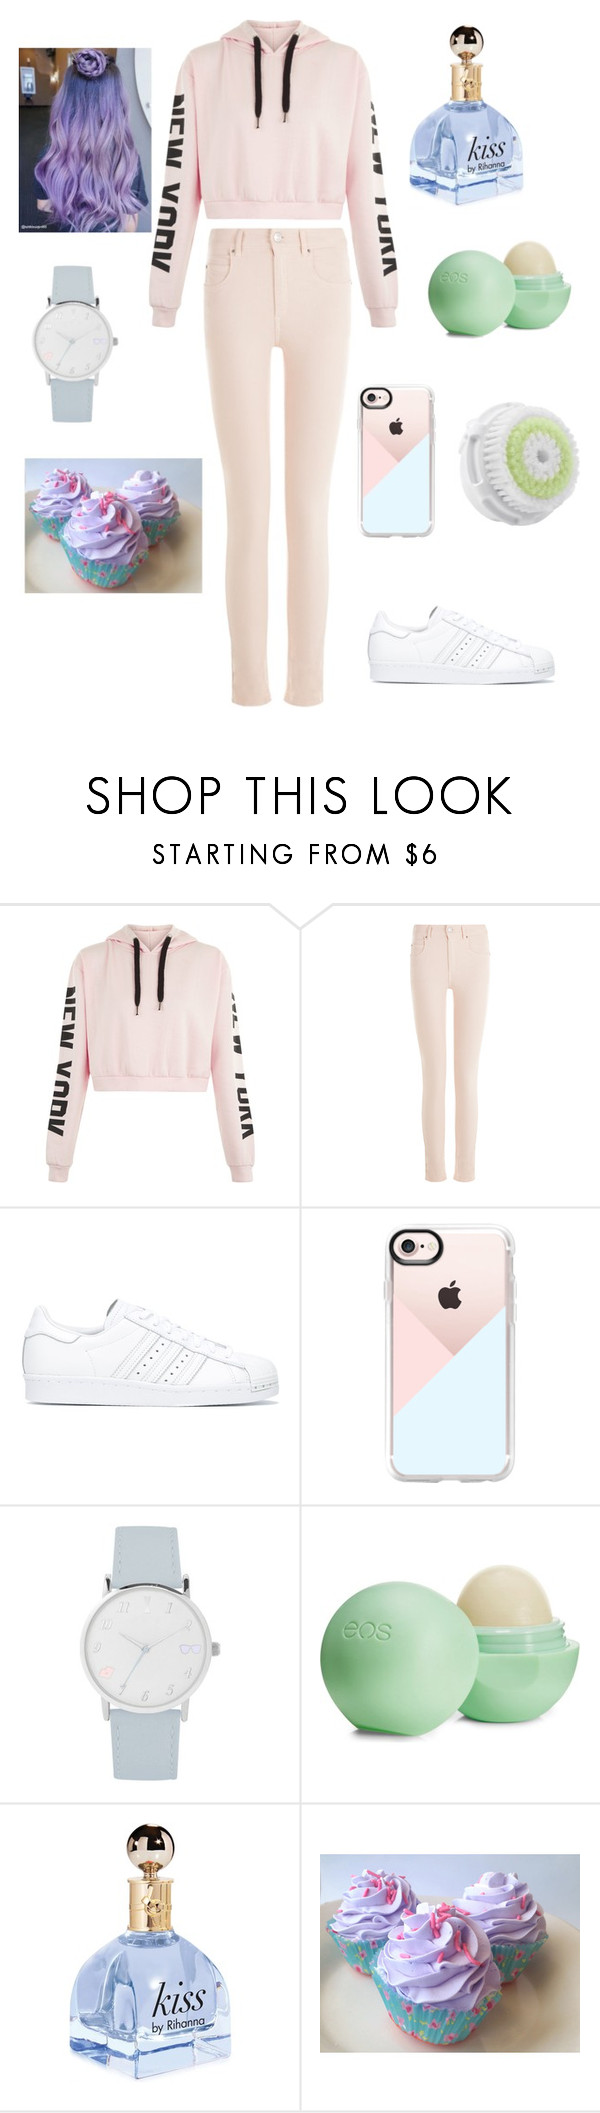 """""""living light"""" by karonyrenee ❤ liked on Polyvore featuring Étoile Isabel Marant, adidas, Casetify, A.X.N.Y., Eos and Clarisonic"""